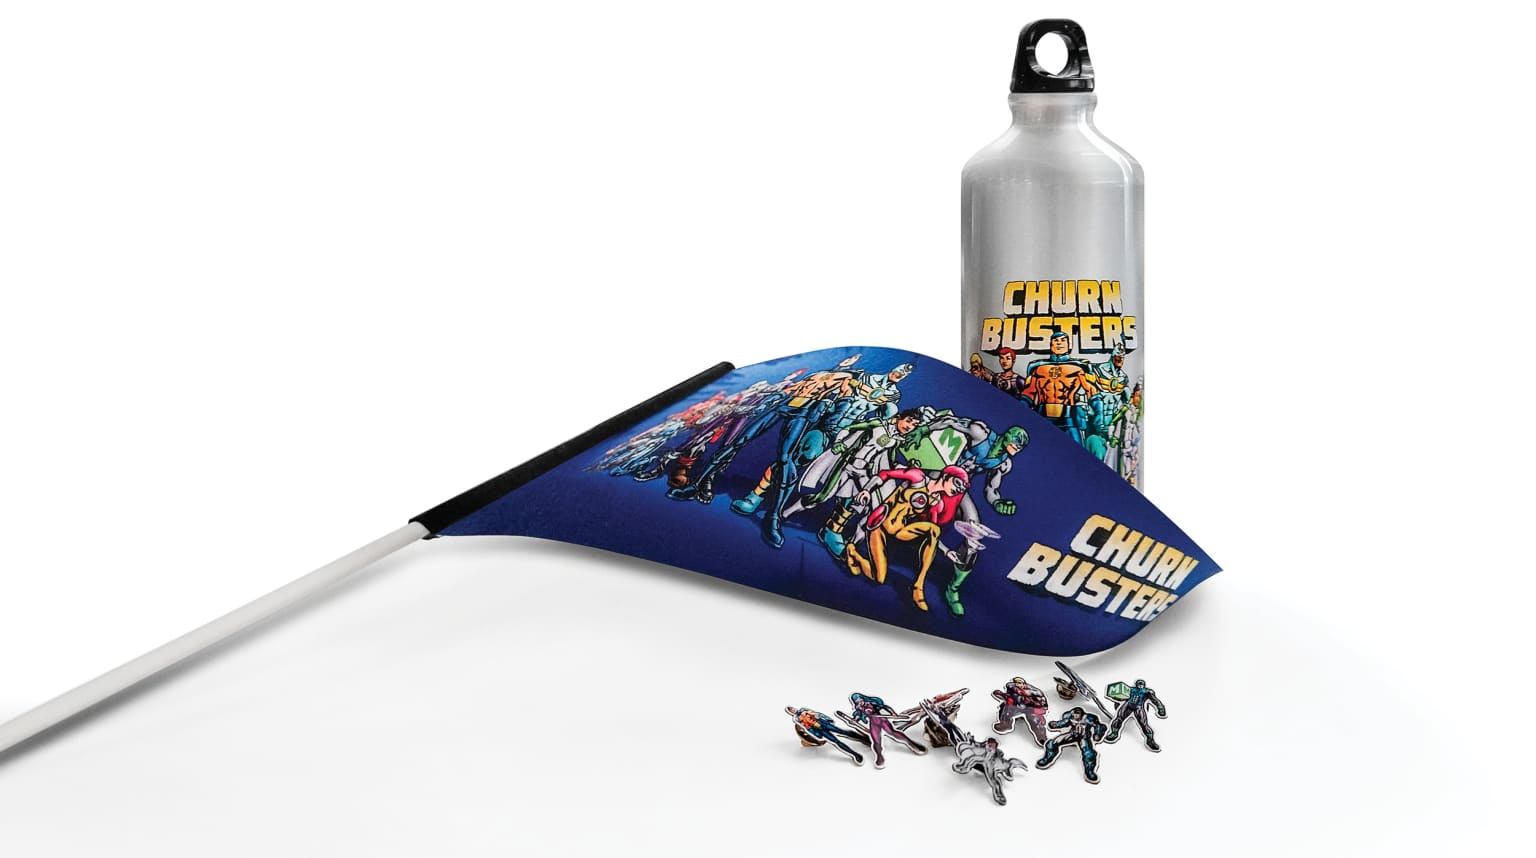 Churn Buster Campaign